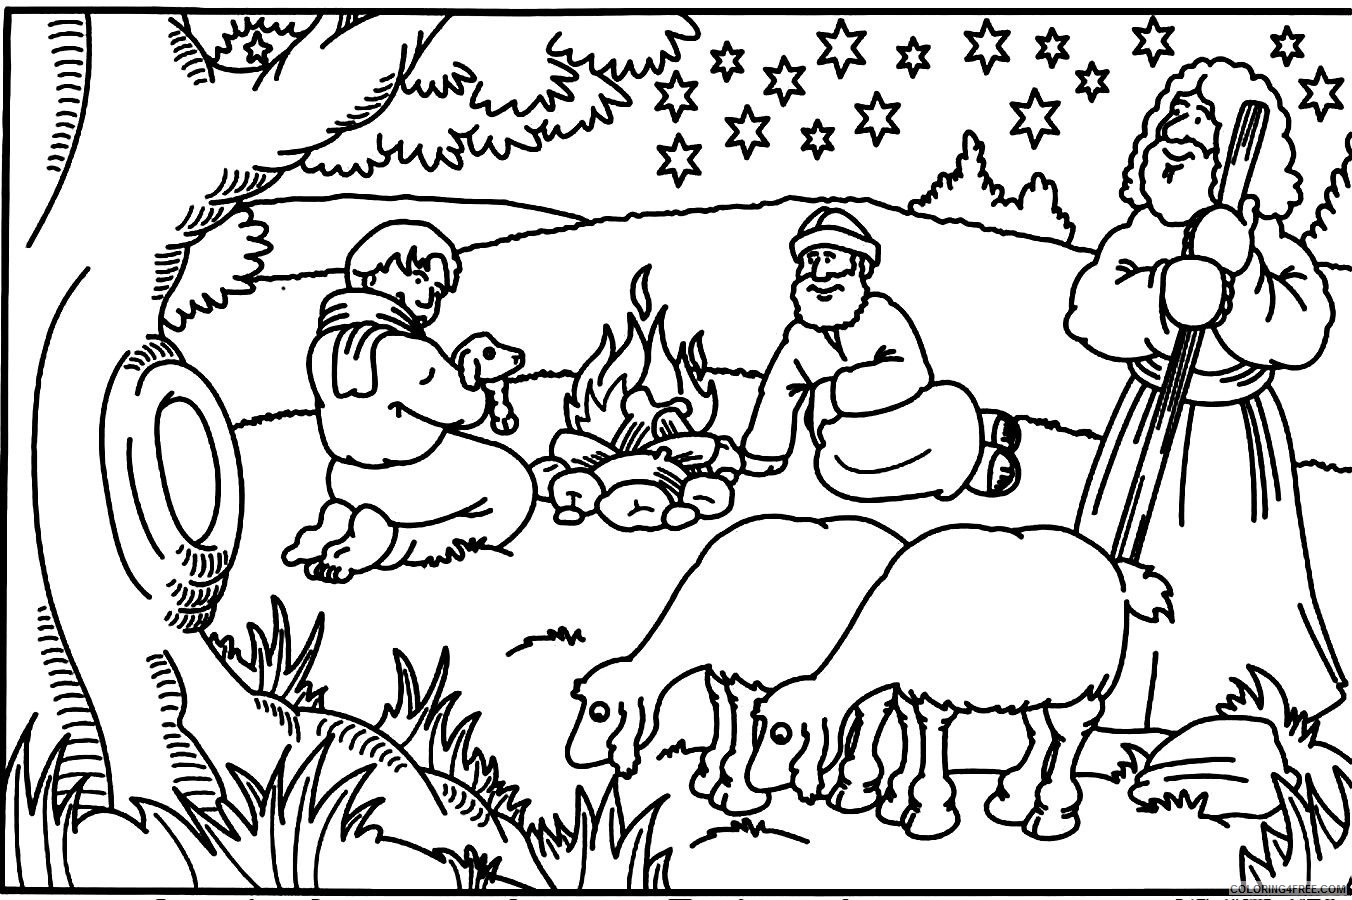 Bible Coloring Pages For Kids Coloring4free - Coloring4Free.com